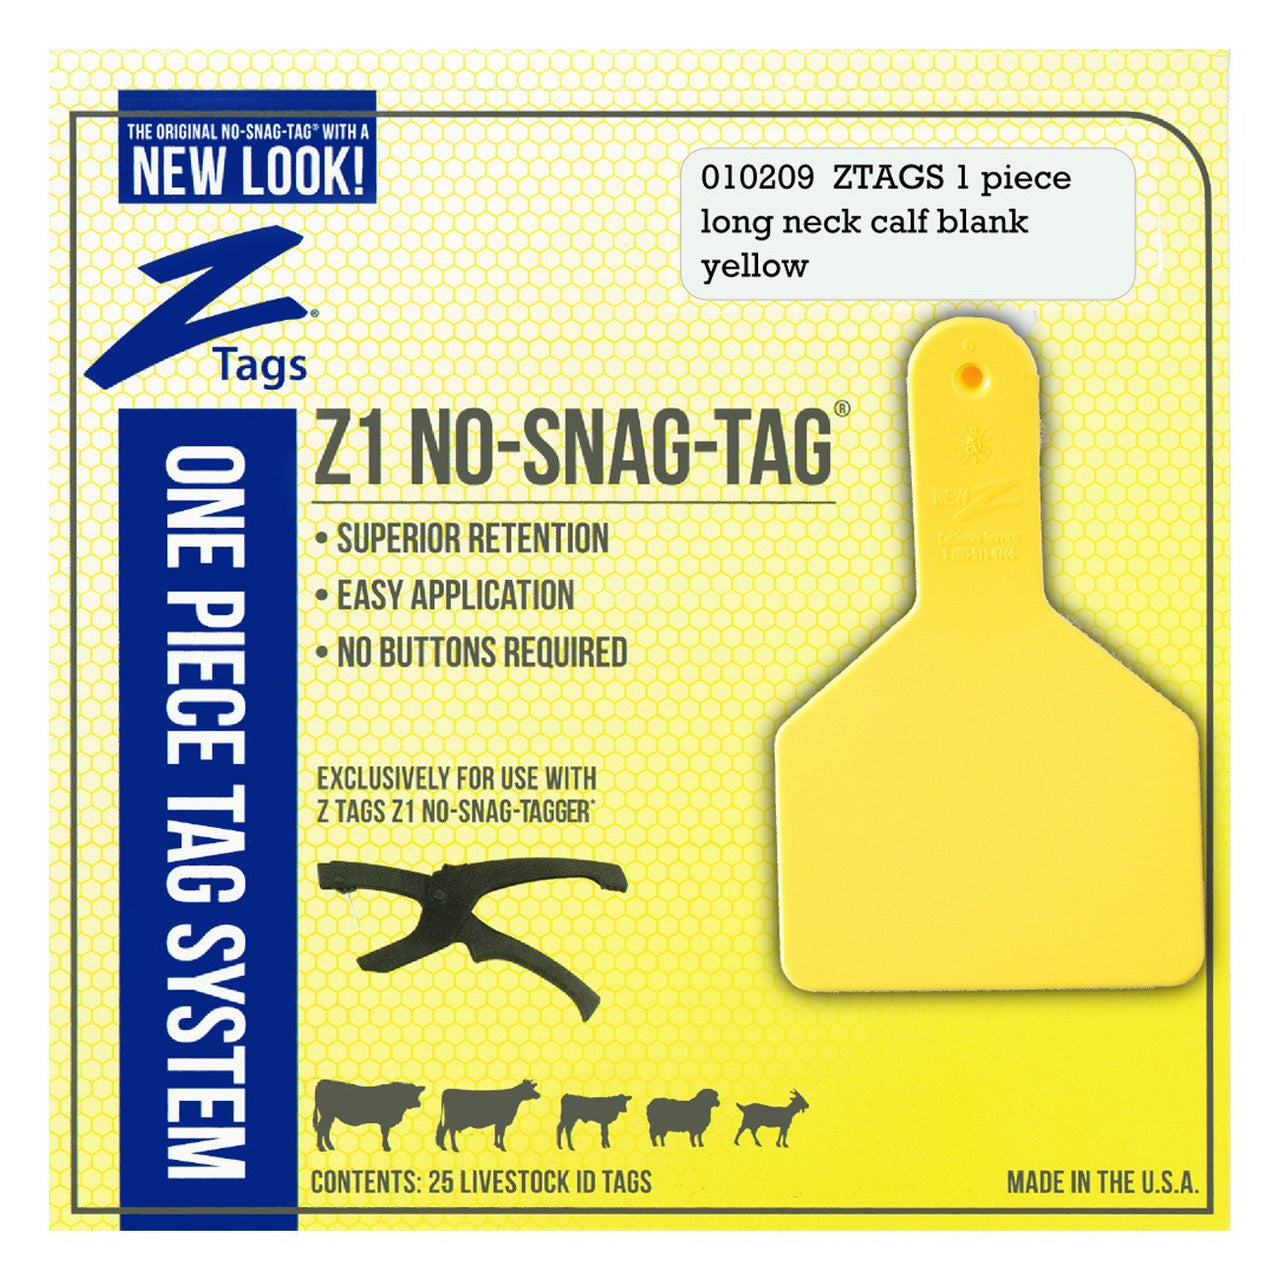 Z Tags 1 piece long neck calf blank (Yellow) 25 pack